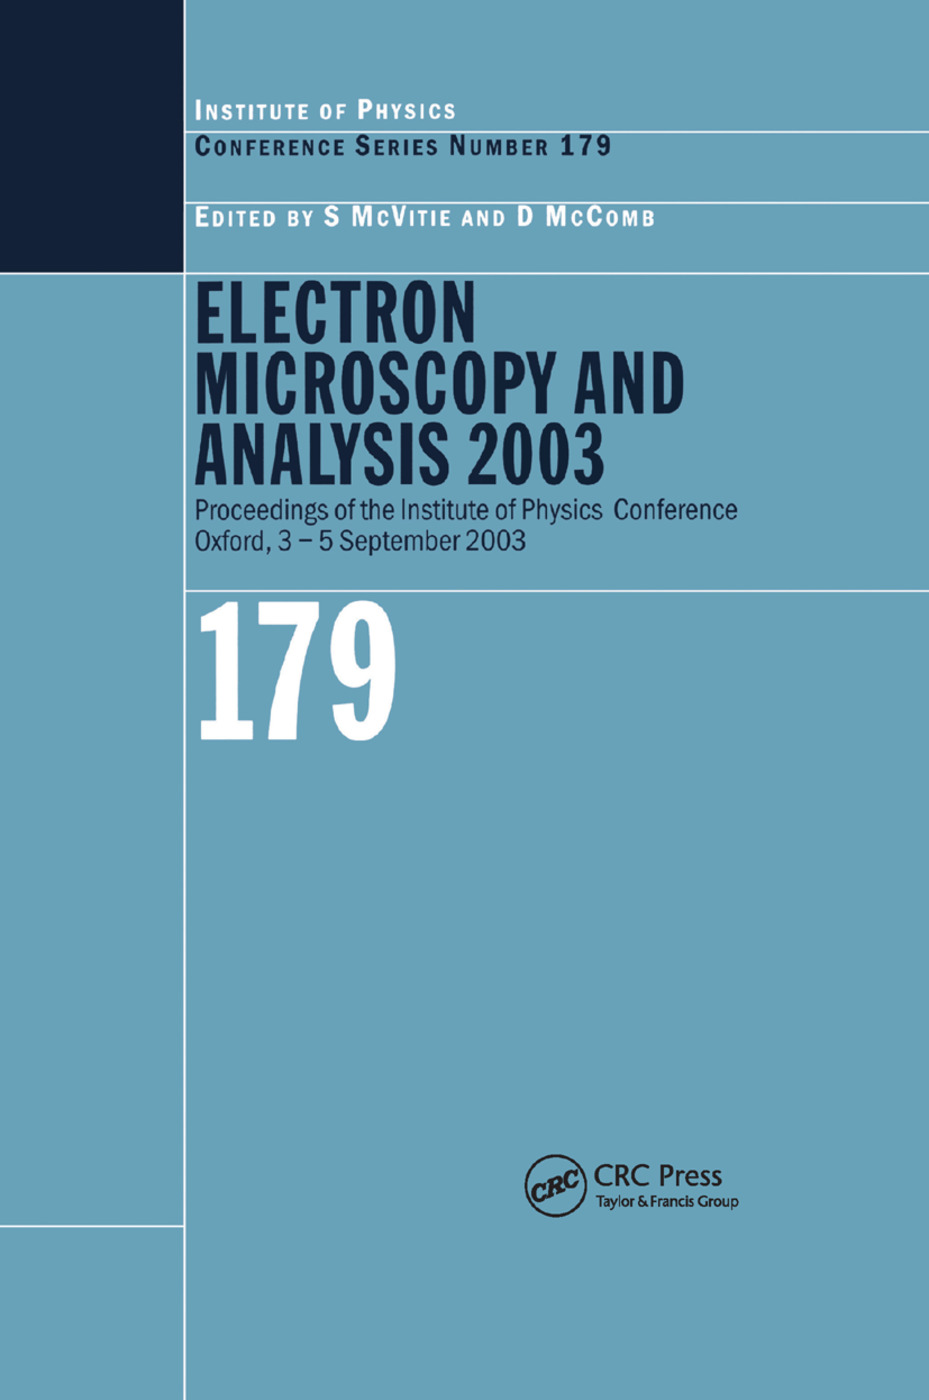 Electron Microscopy and Analysis 2003